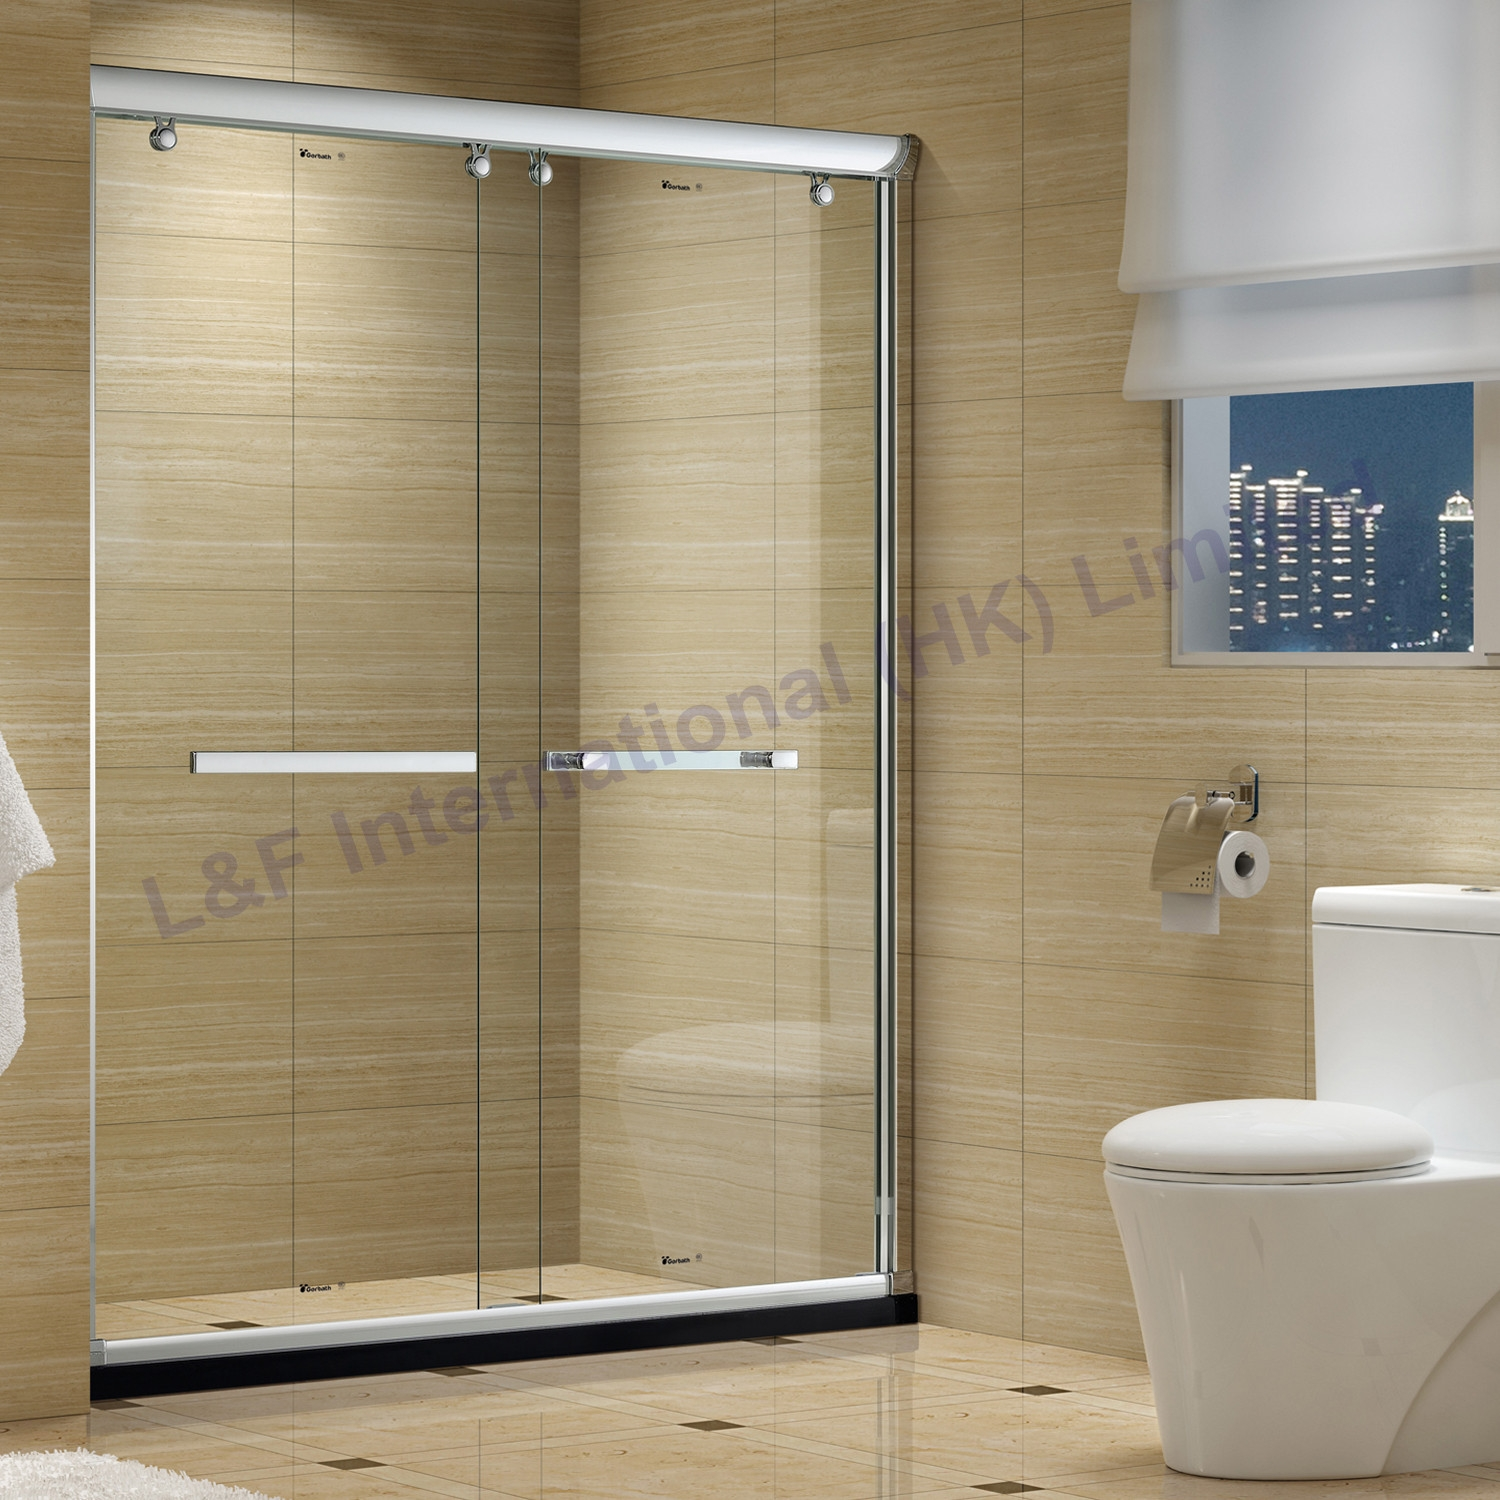 Permalink to Double Sliding Glass Shower Doors